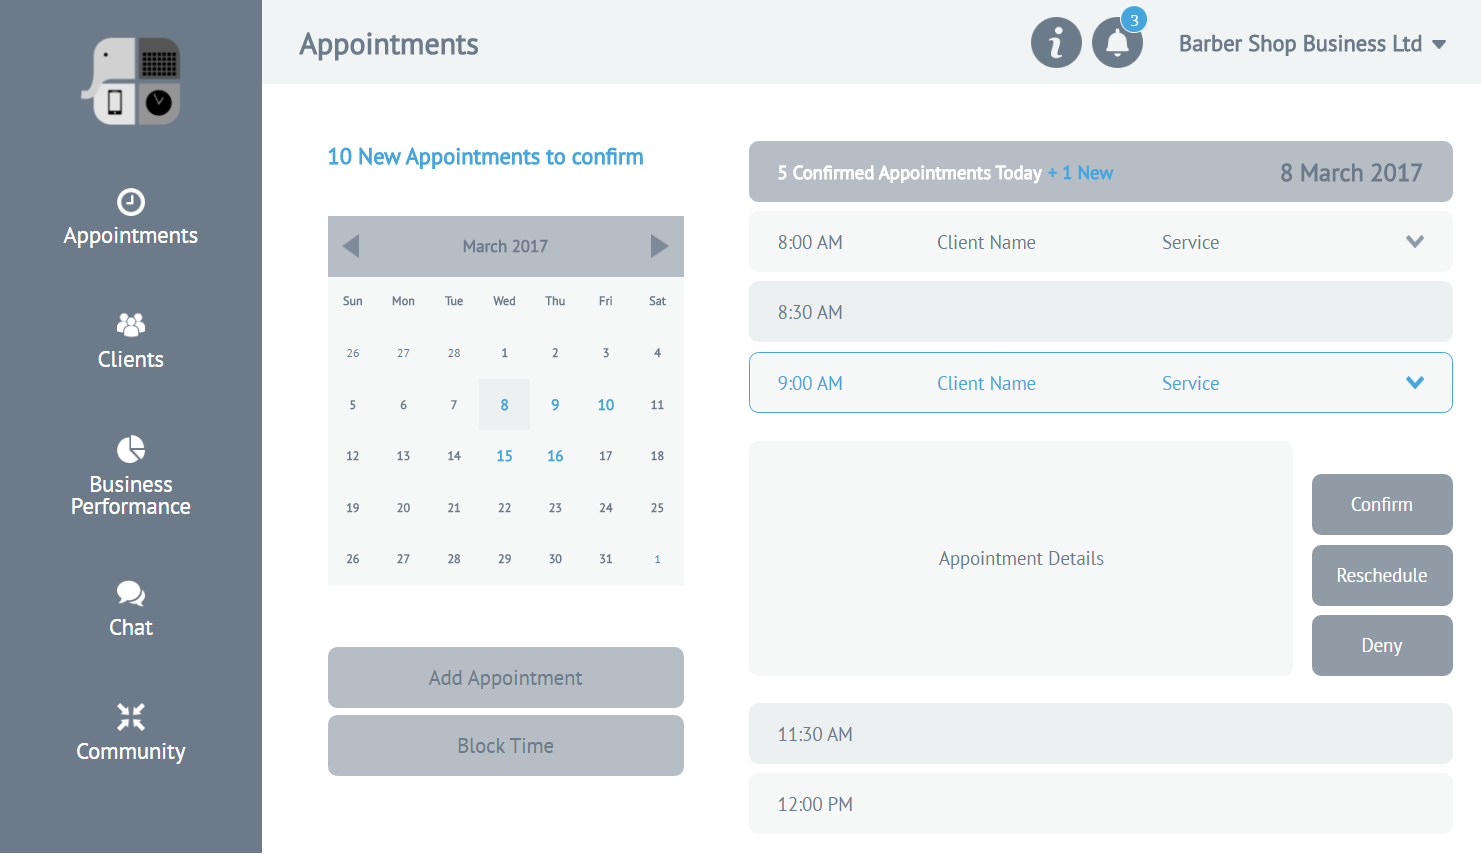 appointments-confirm-appointment